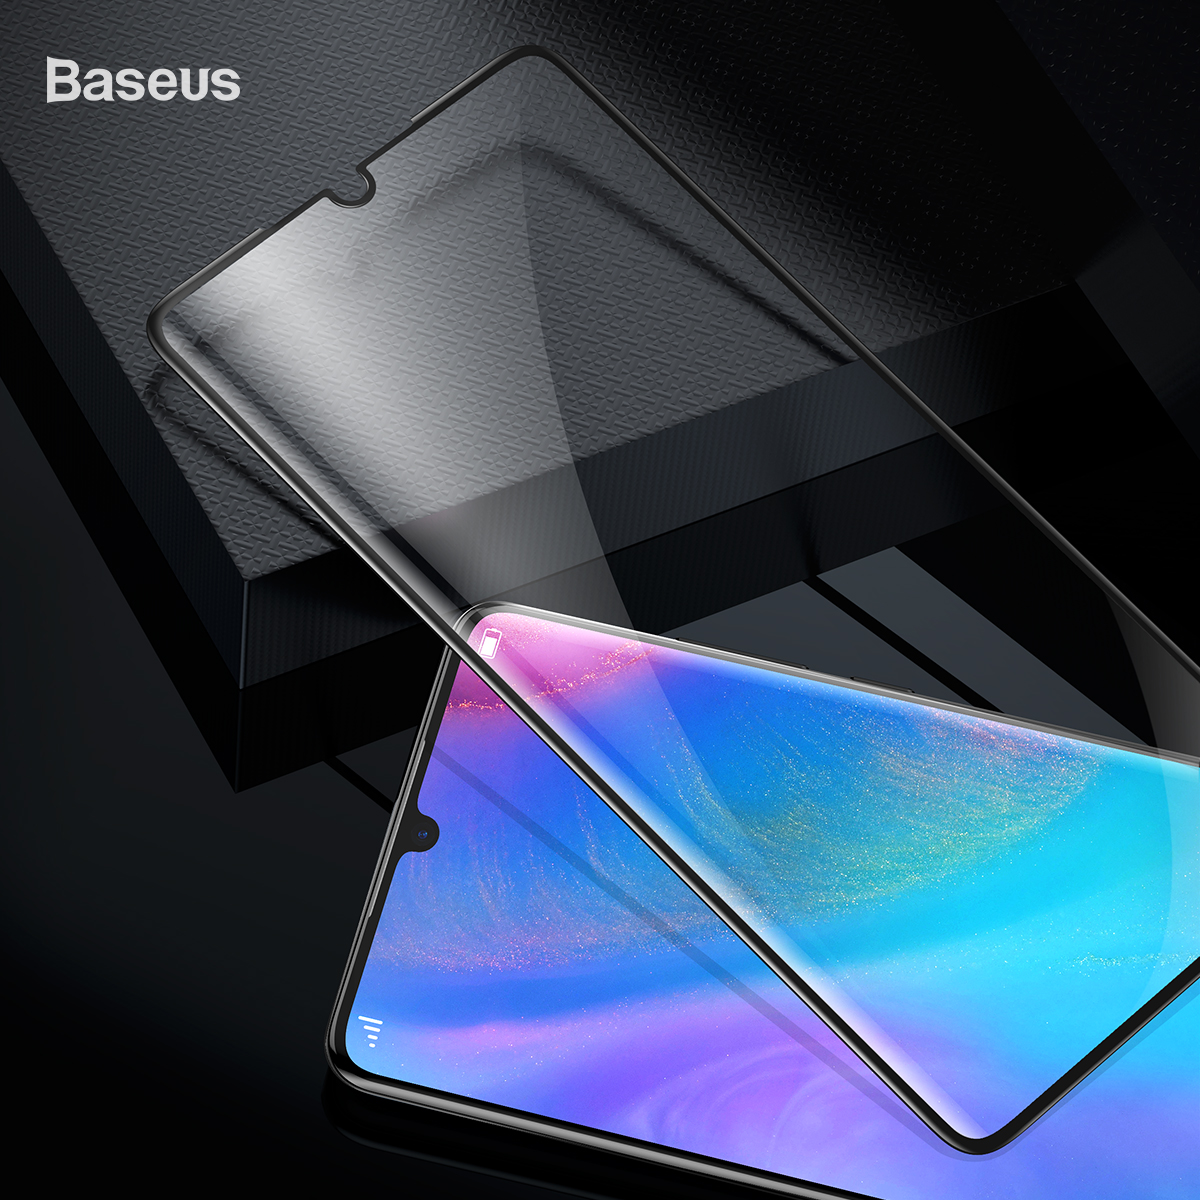 Baseus 2PCS 0.15mm Full-cover Curved High Definition Anti-explosion Soft Screen Protector For Huawei P30 Pro